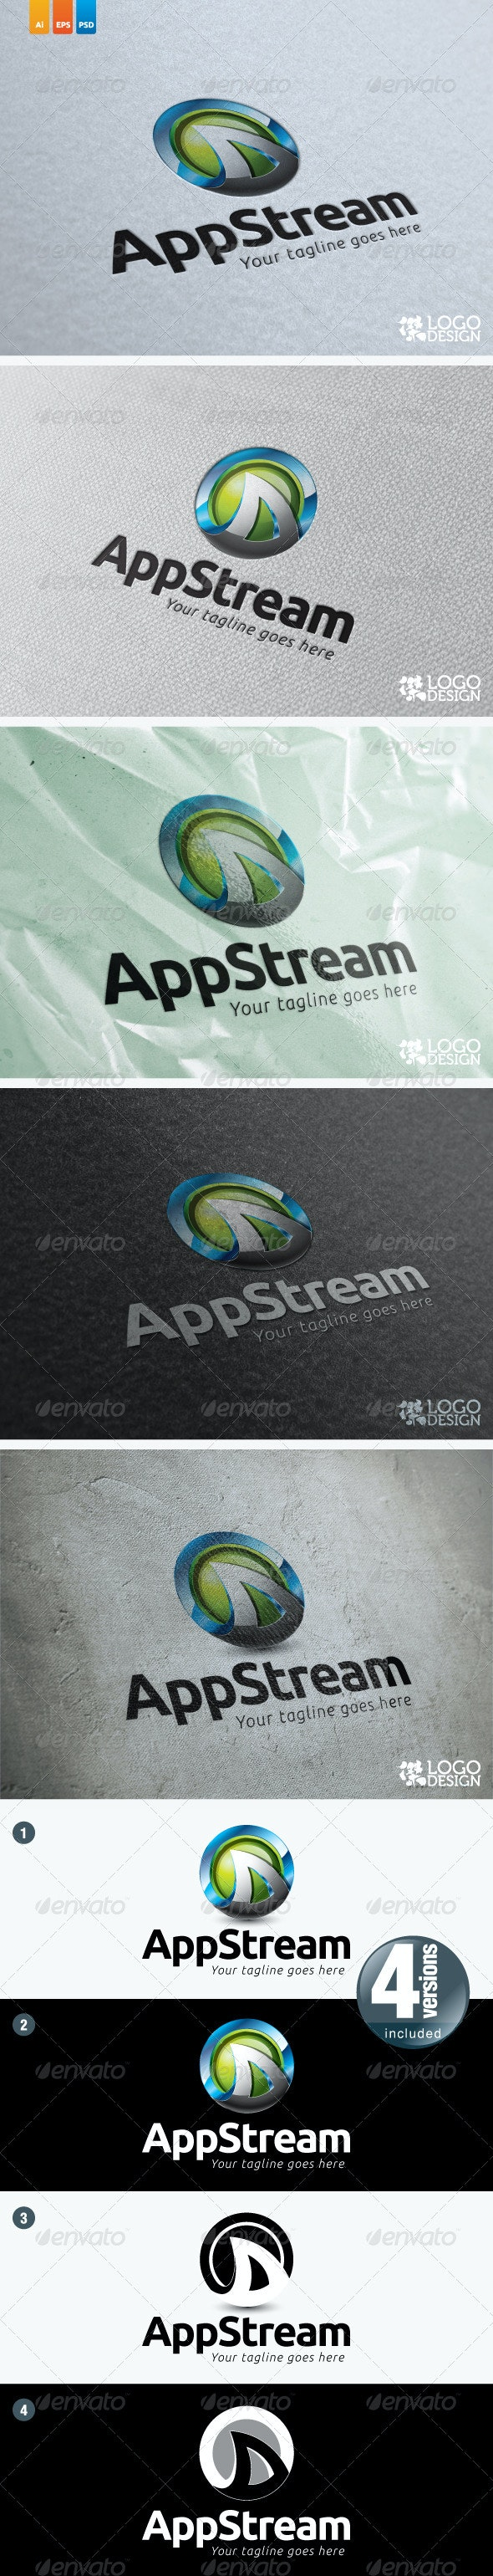 AppStream Logo - 3d Abstract